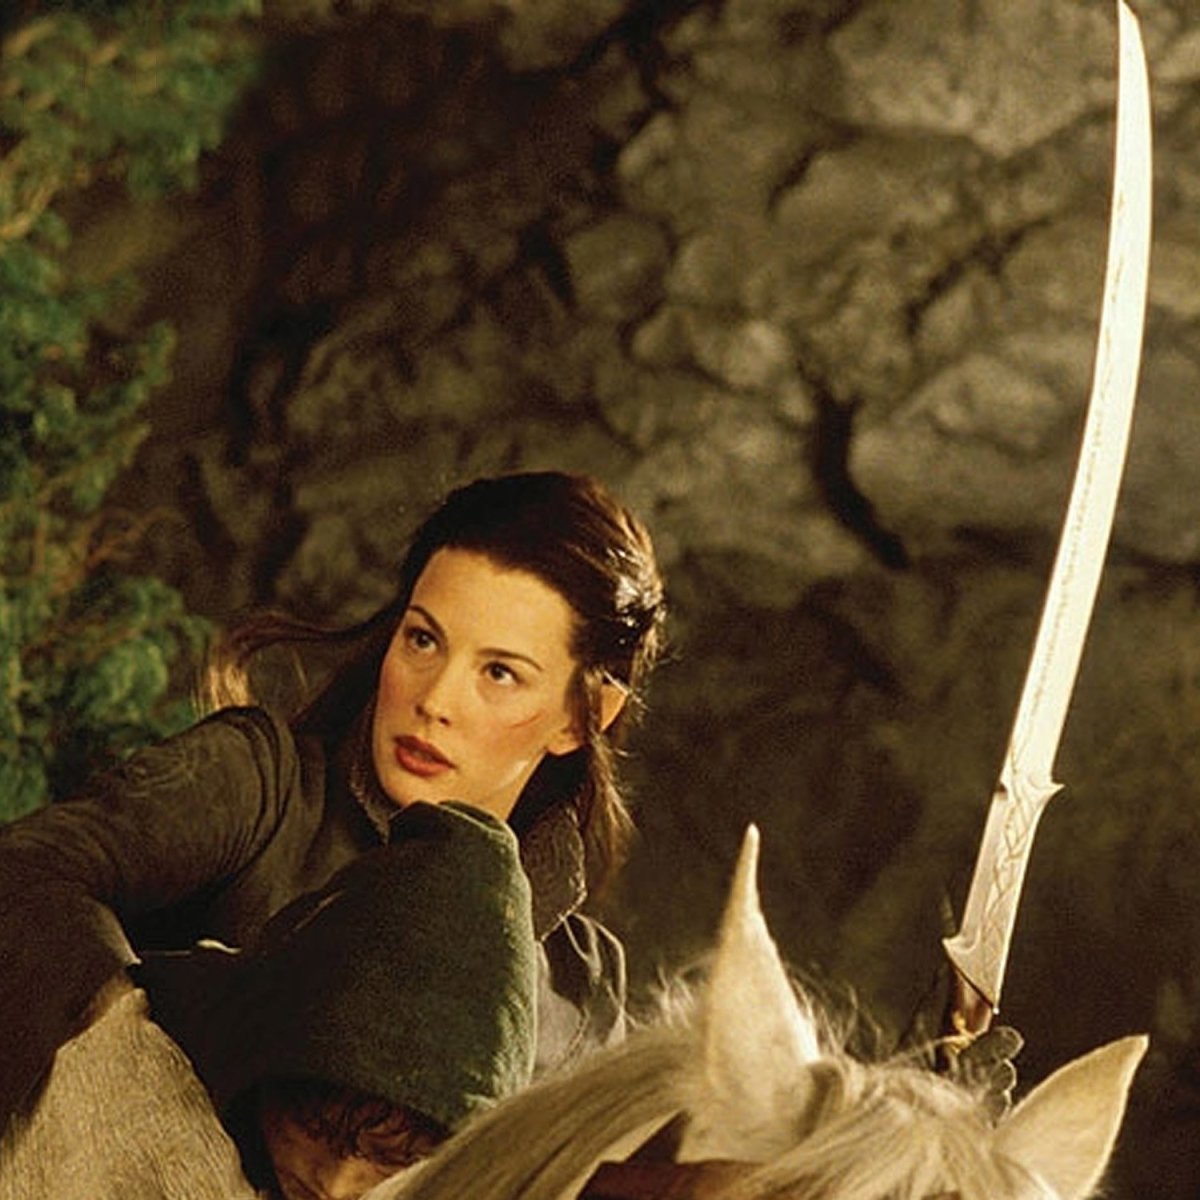 From New Line Cinema and Weta Works.  The arguably preferred image of Arwen: strong, armed, confidant, and determined in the face of the enemy.